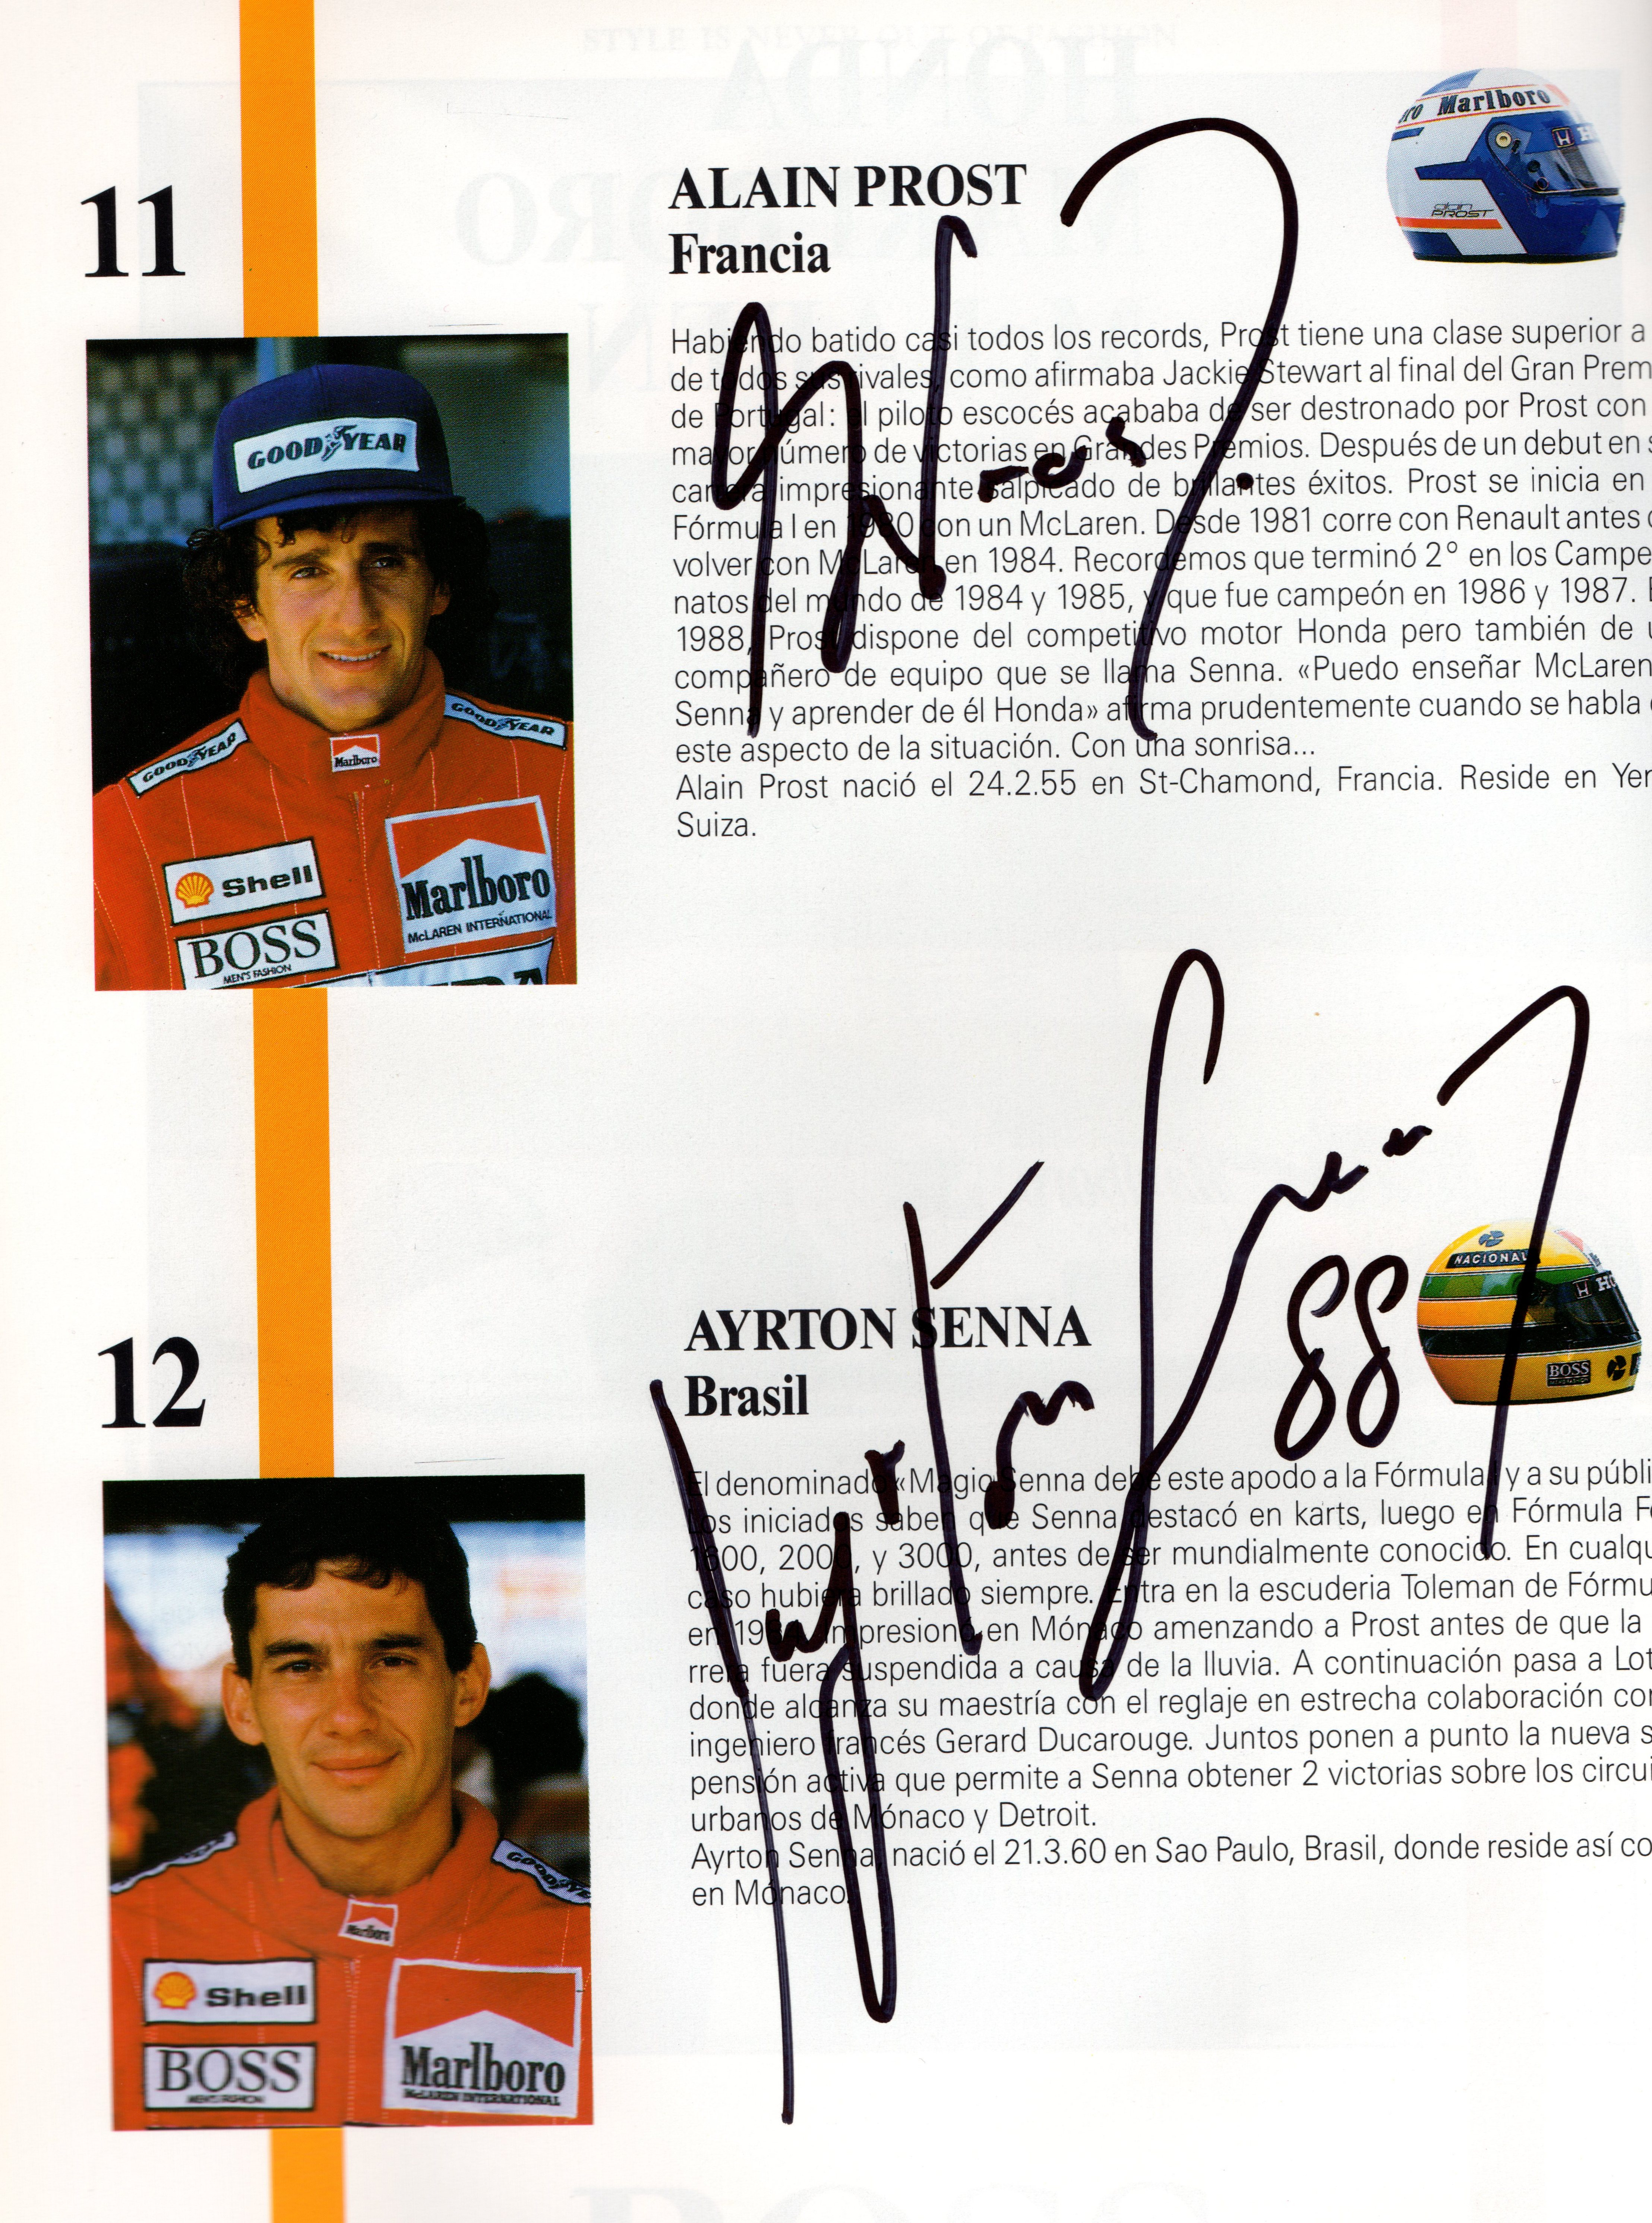 Ayrton Senna and Other Legends Hand Signed 1988 Spanish Grand Prix Program